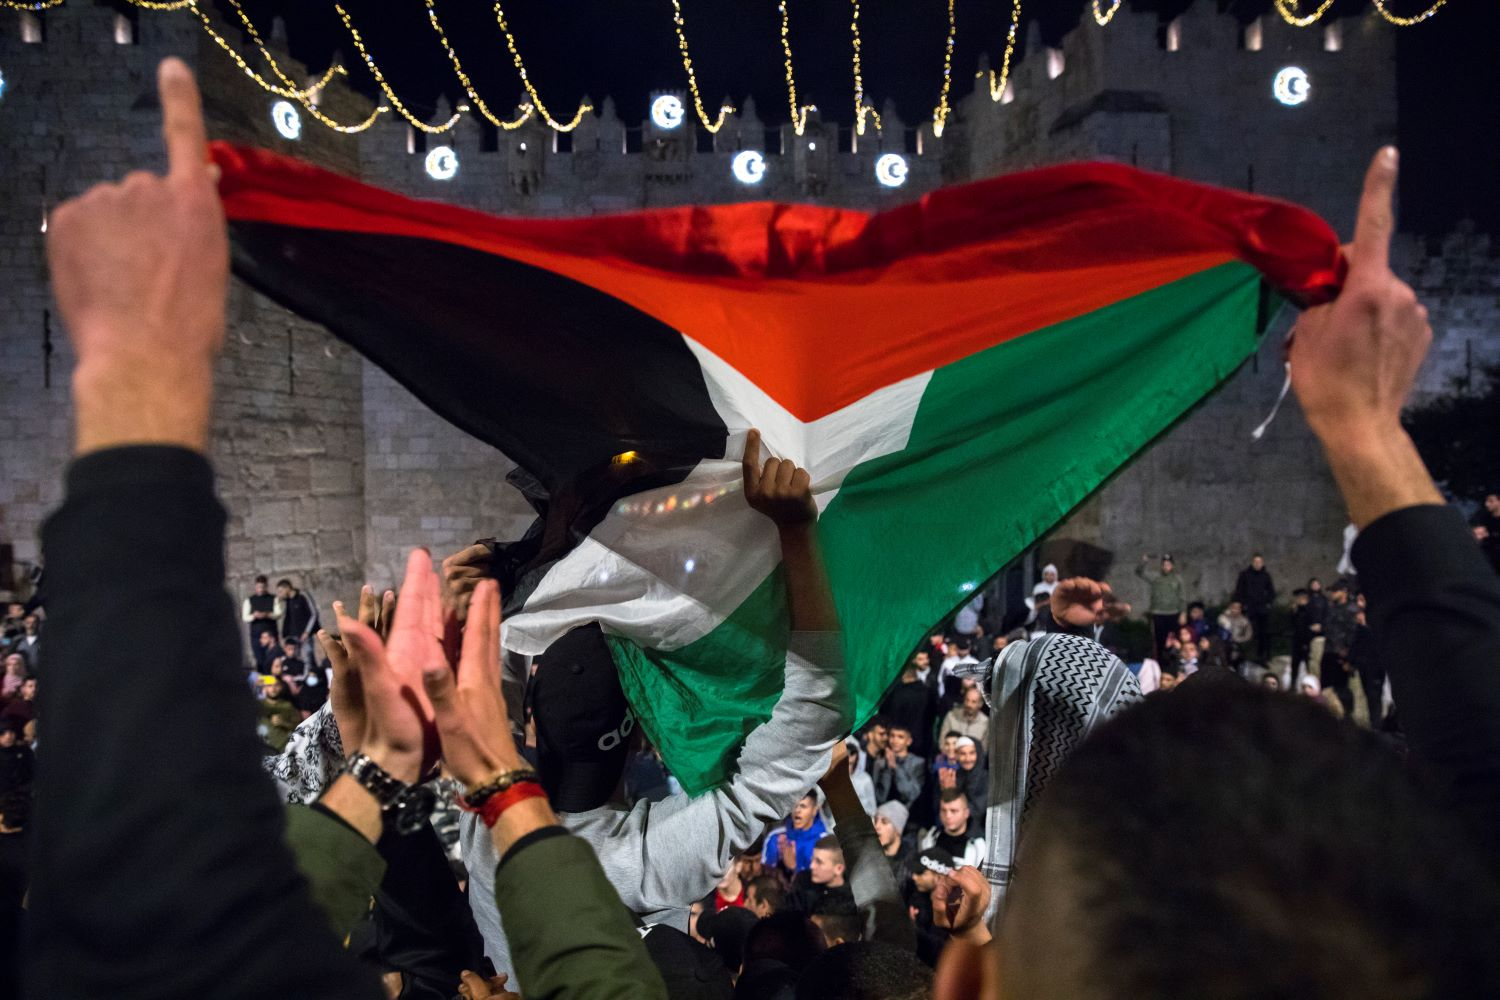 Palestinians gather and wave flags at Damascus Gate in Jerusalem's Old City, during the holy Muslim month of Ramadan, April 26, 2021. (Olivier Fitoussi/Flash90)